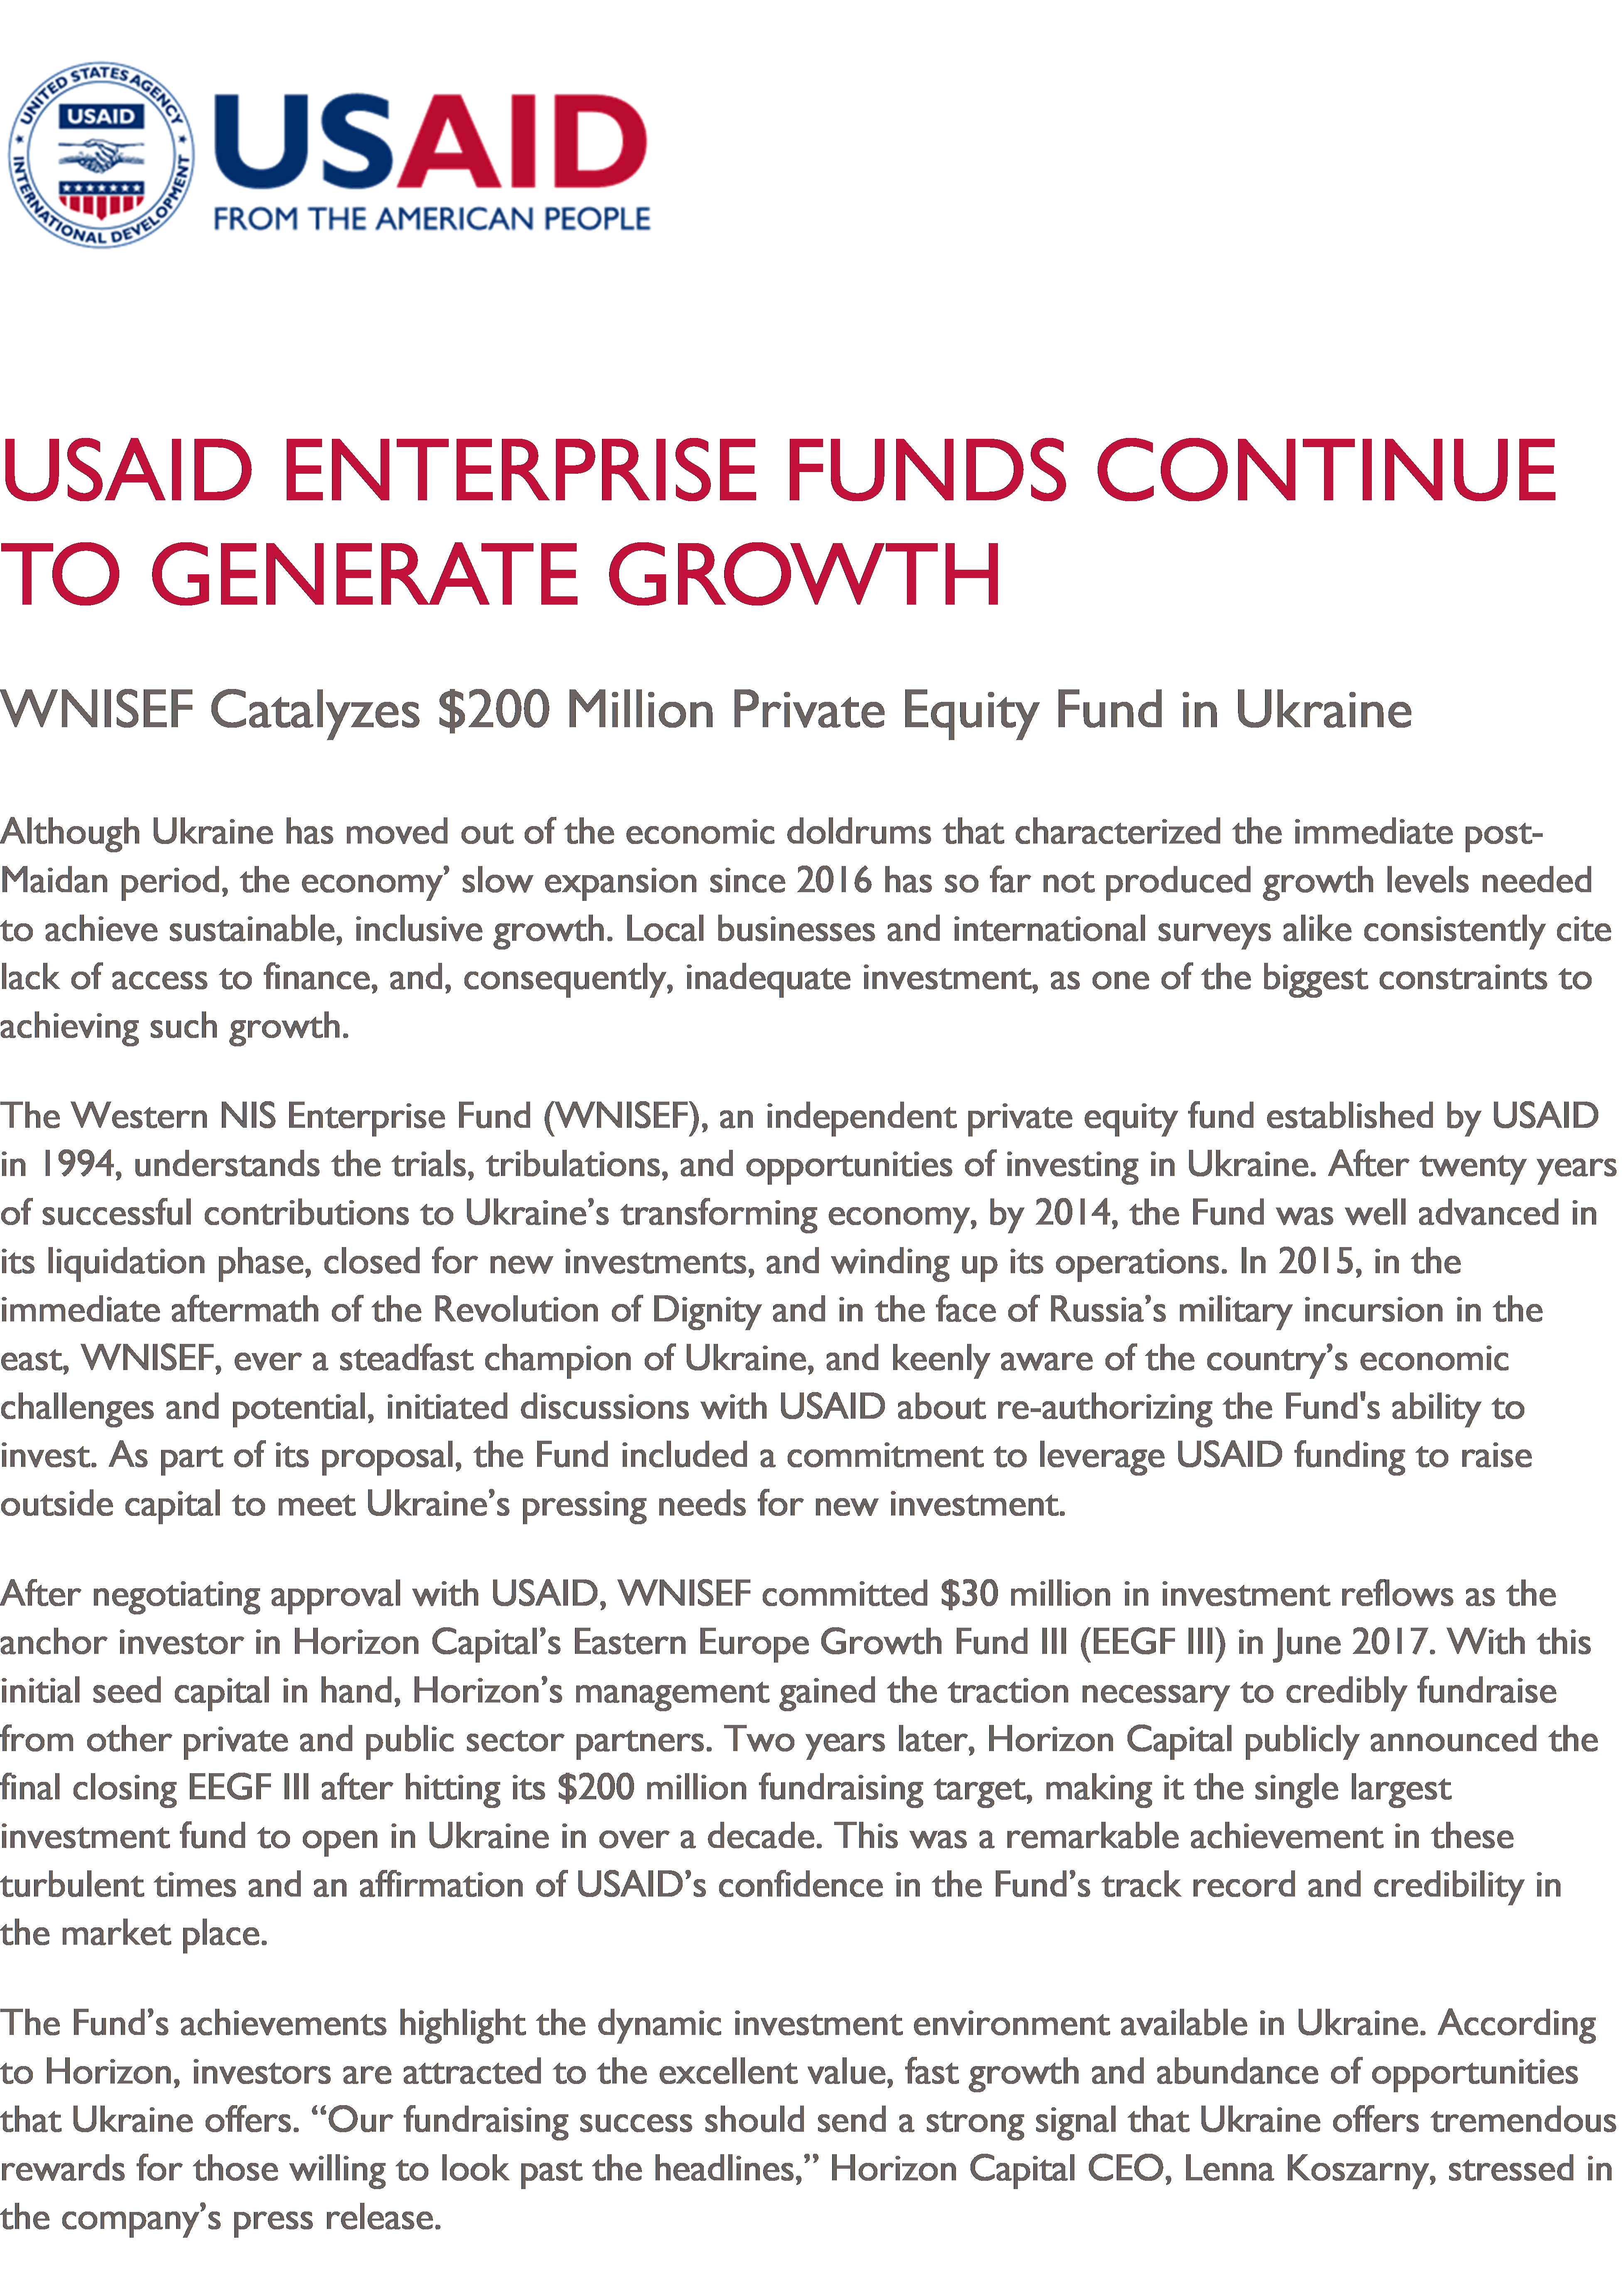 USAID Enterprise Fund Continues To Generate Growth: WNISEF Catalyzes $200 Million Private Equity Fund in Ukraine